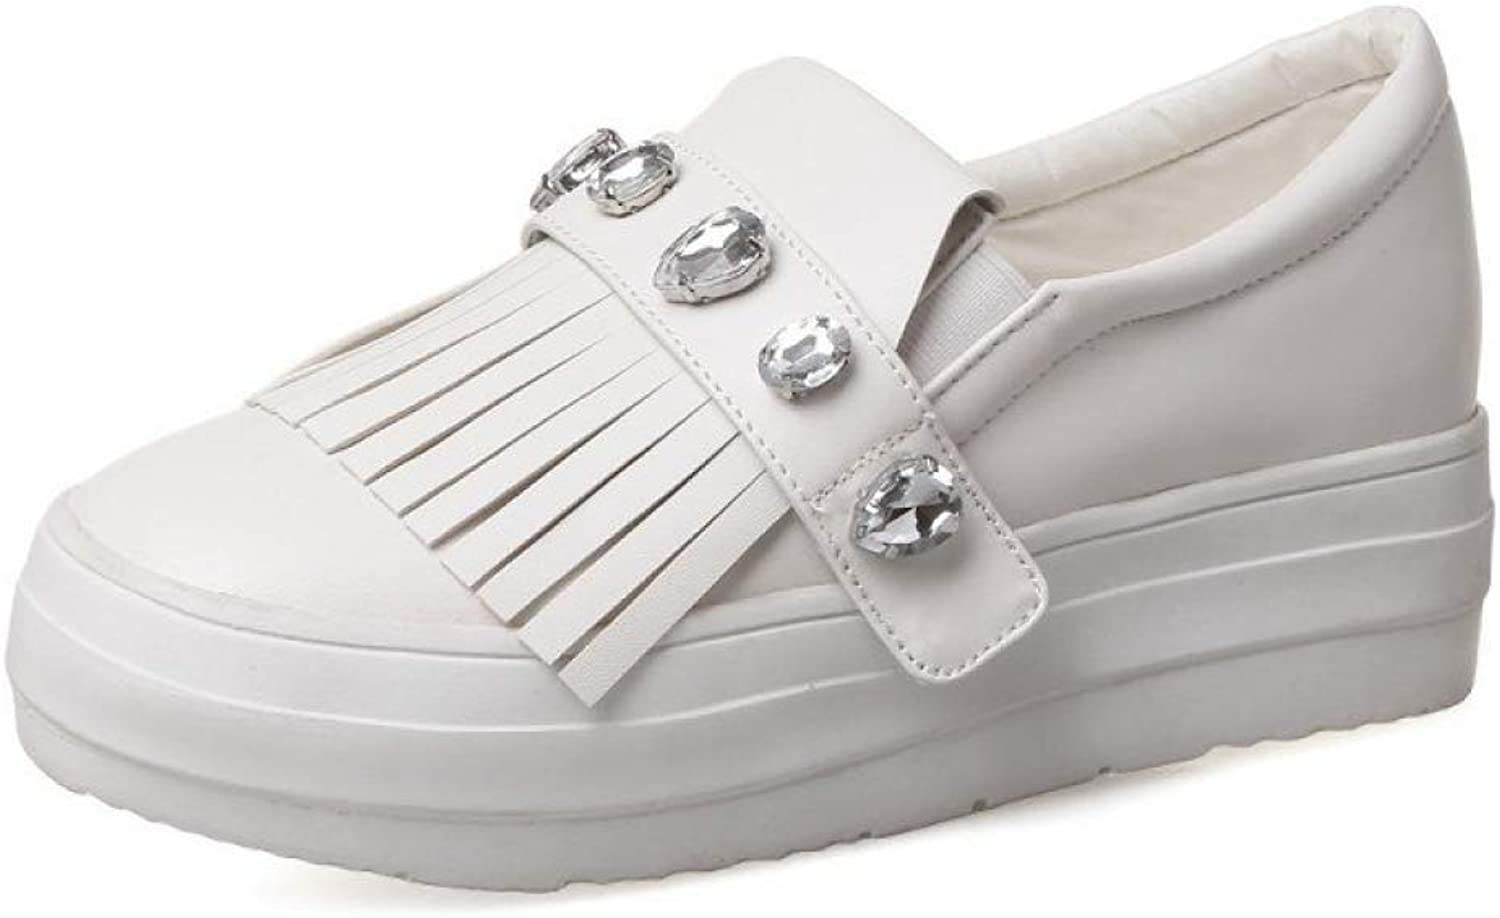 Fay Waters Womens PU Leather Loafers Crystal Tassel Platform Sneakers Casual Slip On Flats shoes